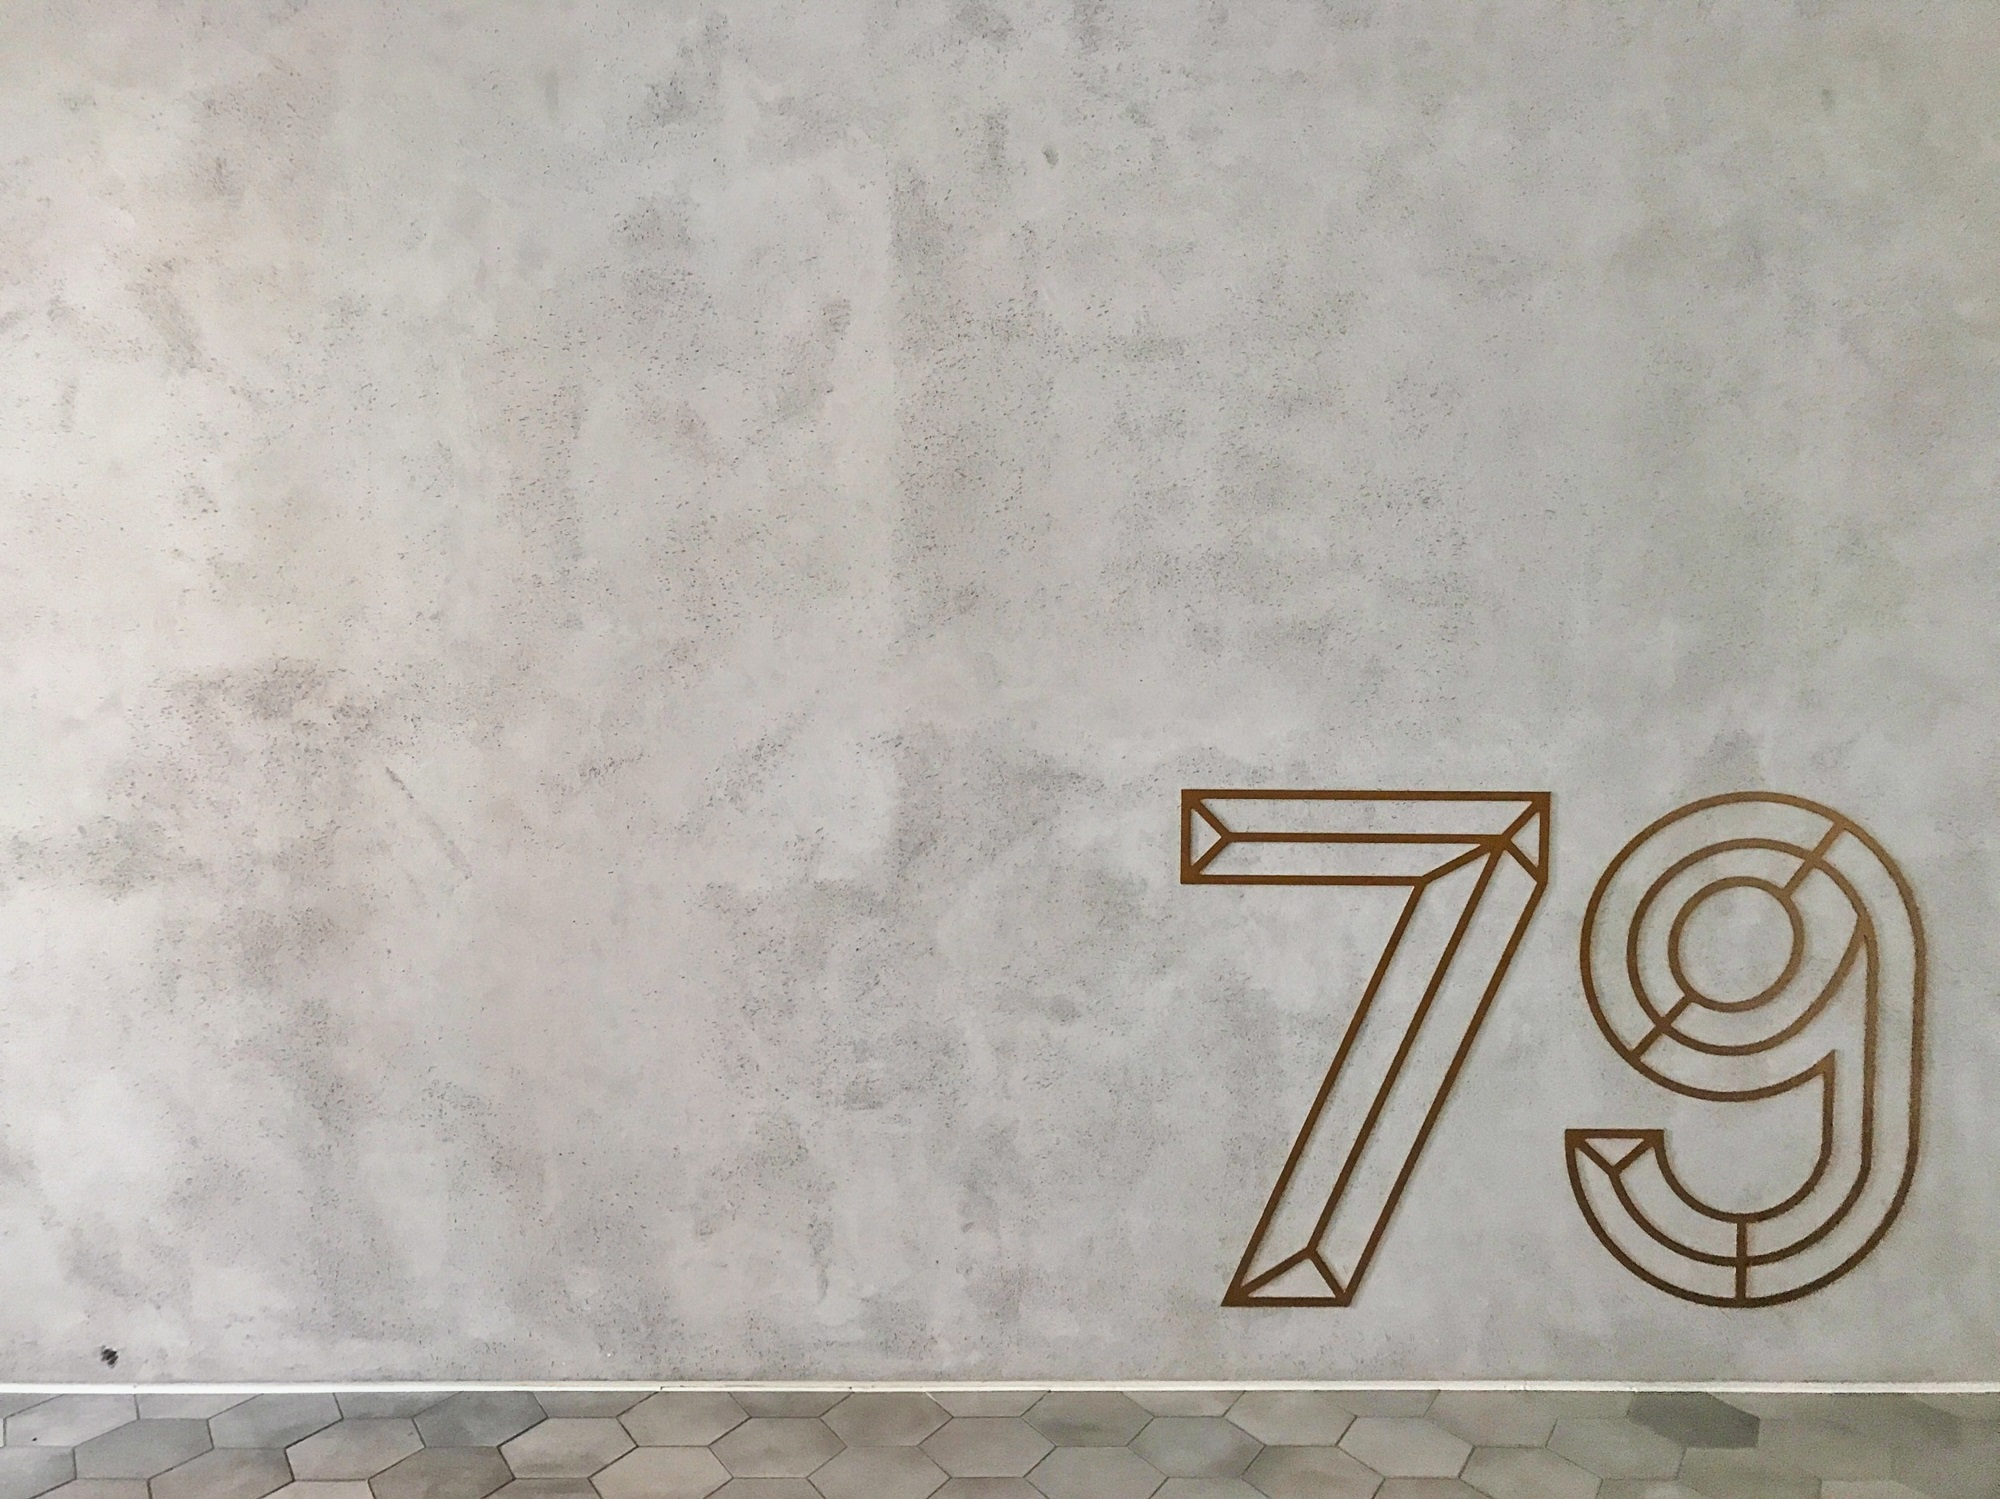 numbers engraved on concrete wall